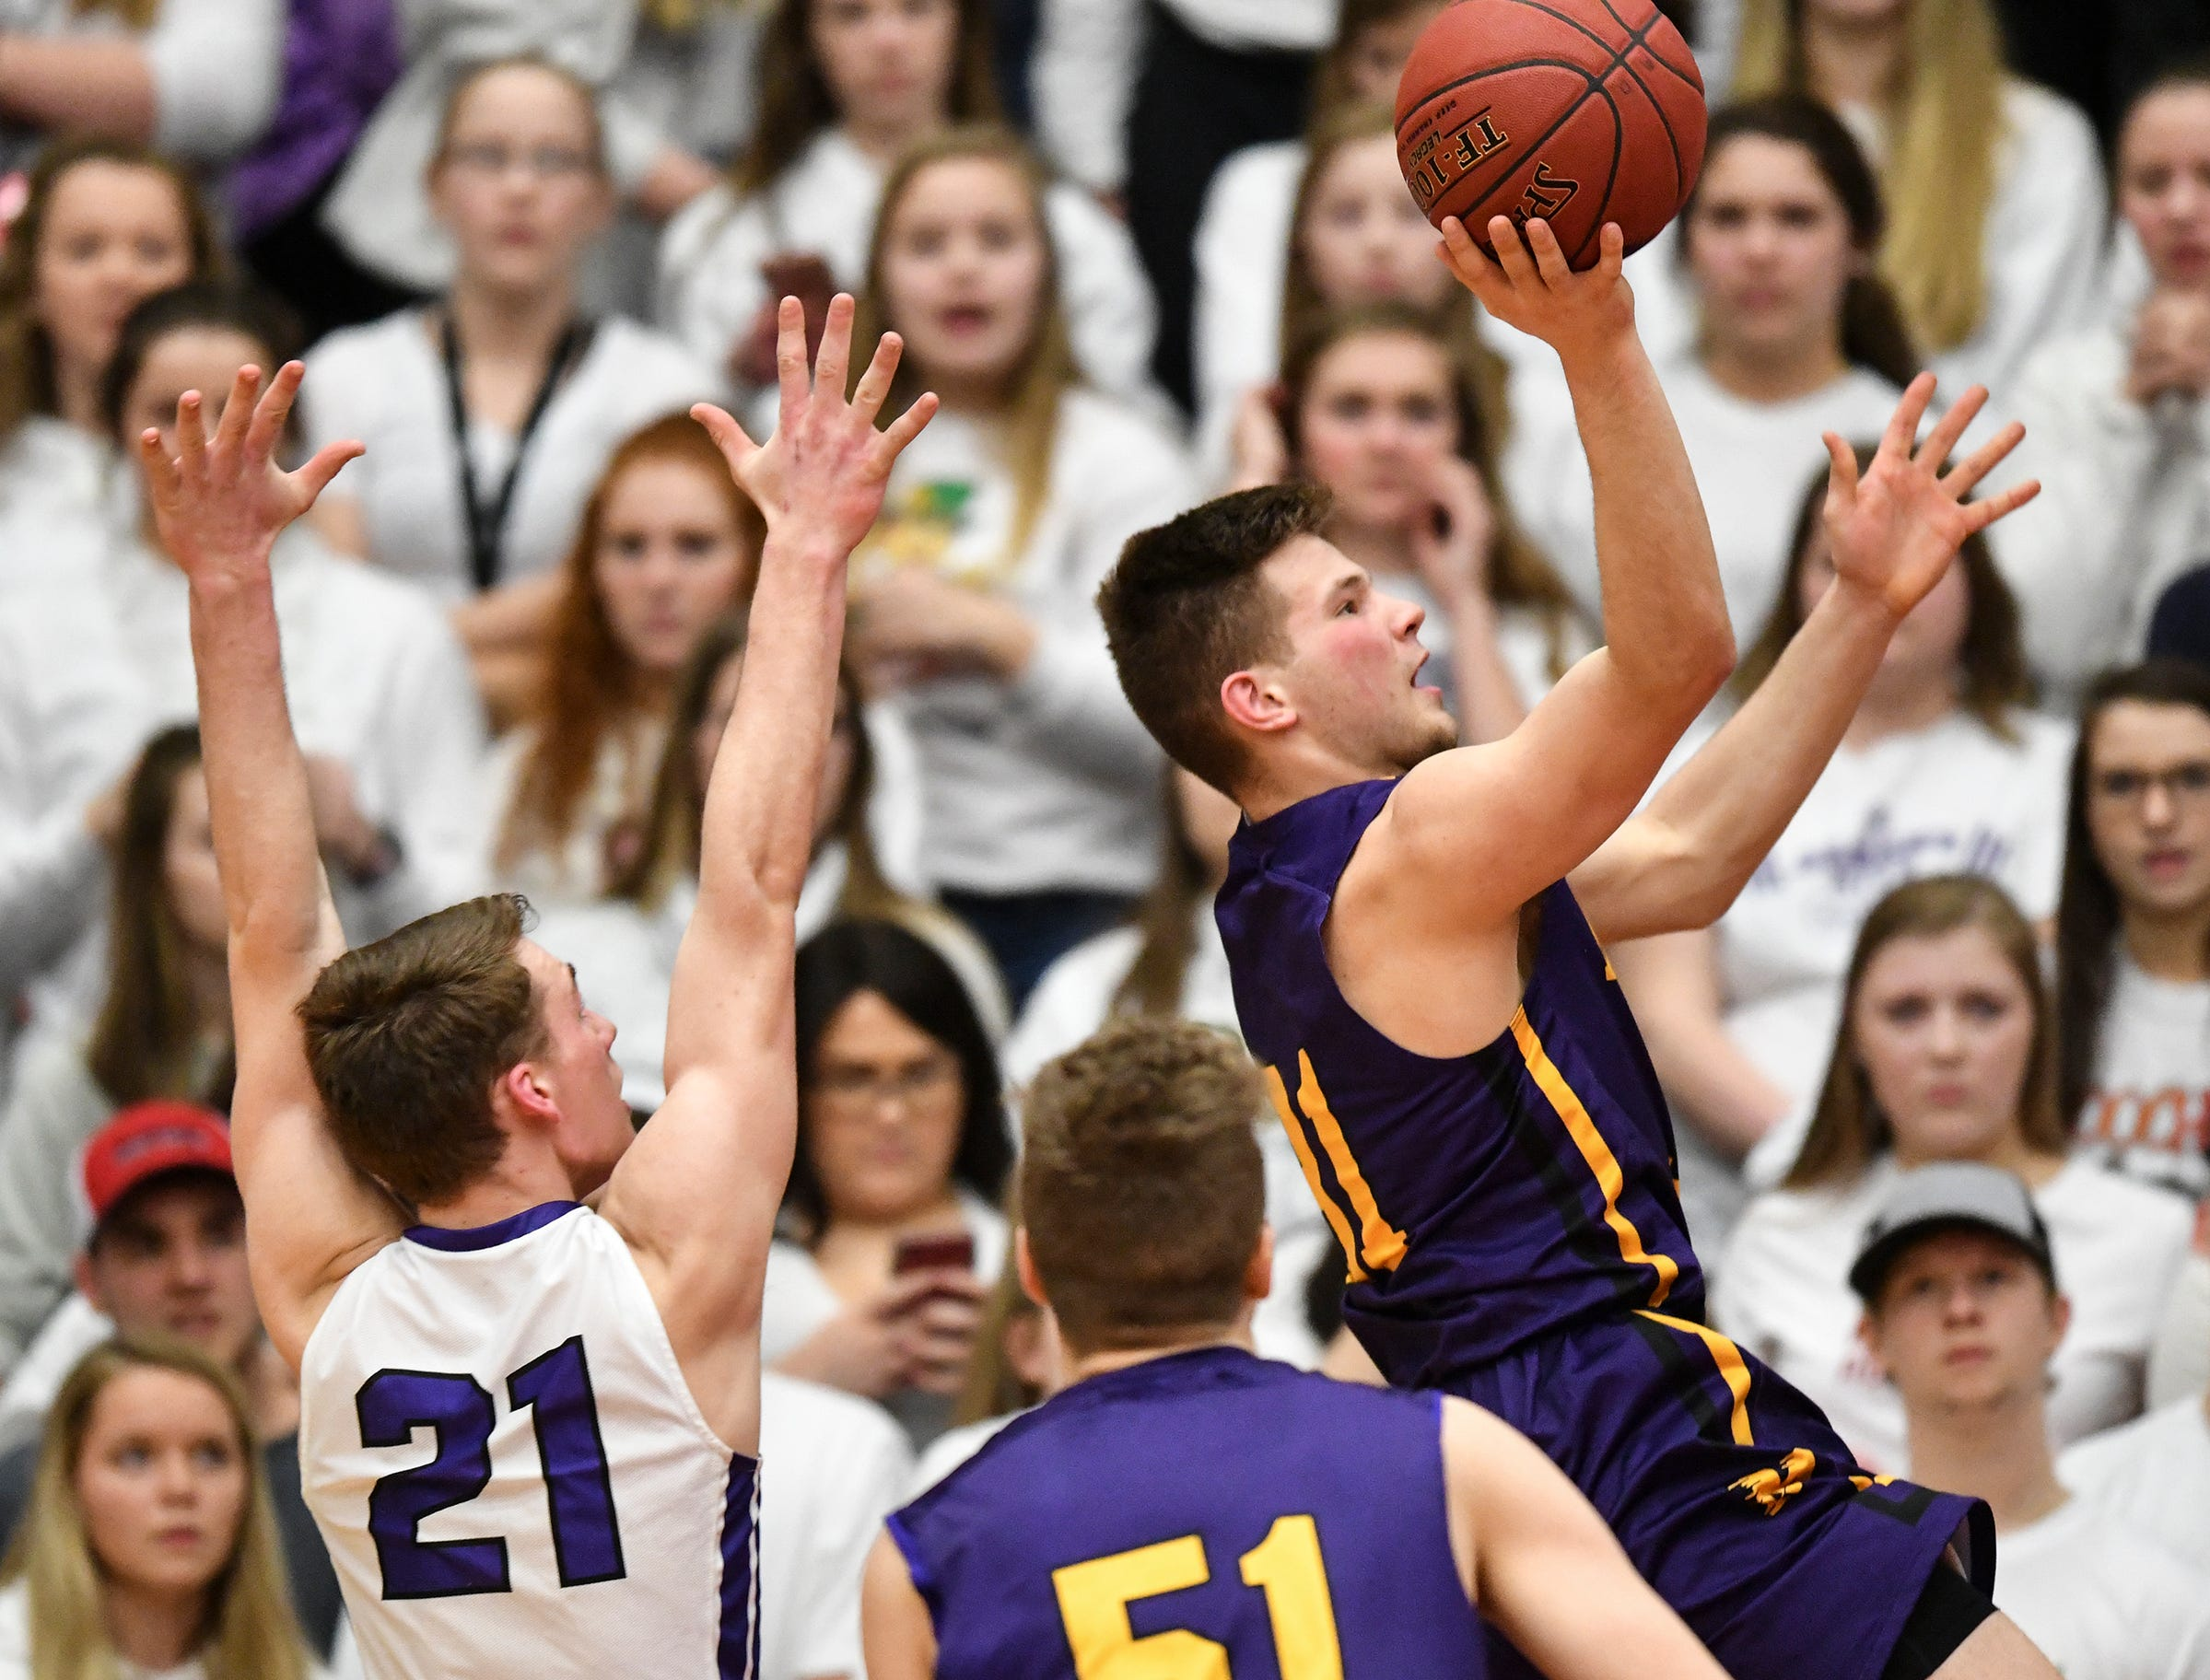 Adam Helmin puts up a shot for Melrose during the first half of the Friday, March 15, Section 6-2A championship game at  Halenbeck Hall in St. Cloud.